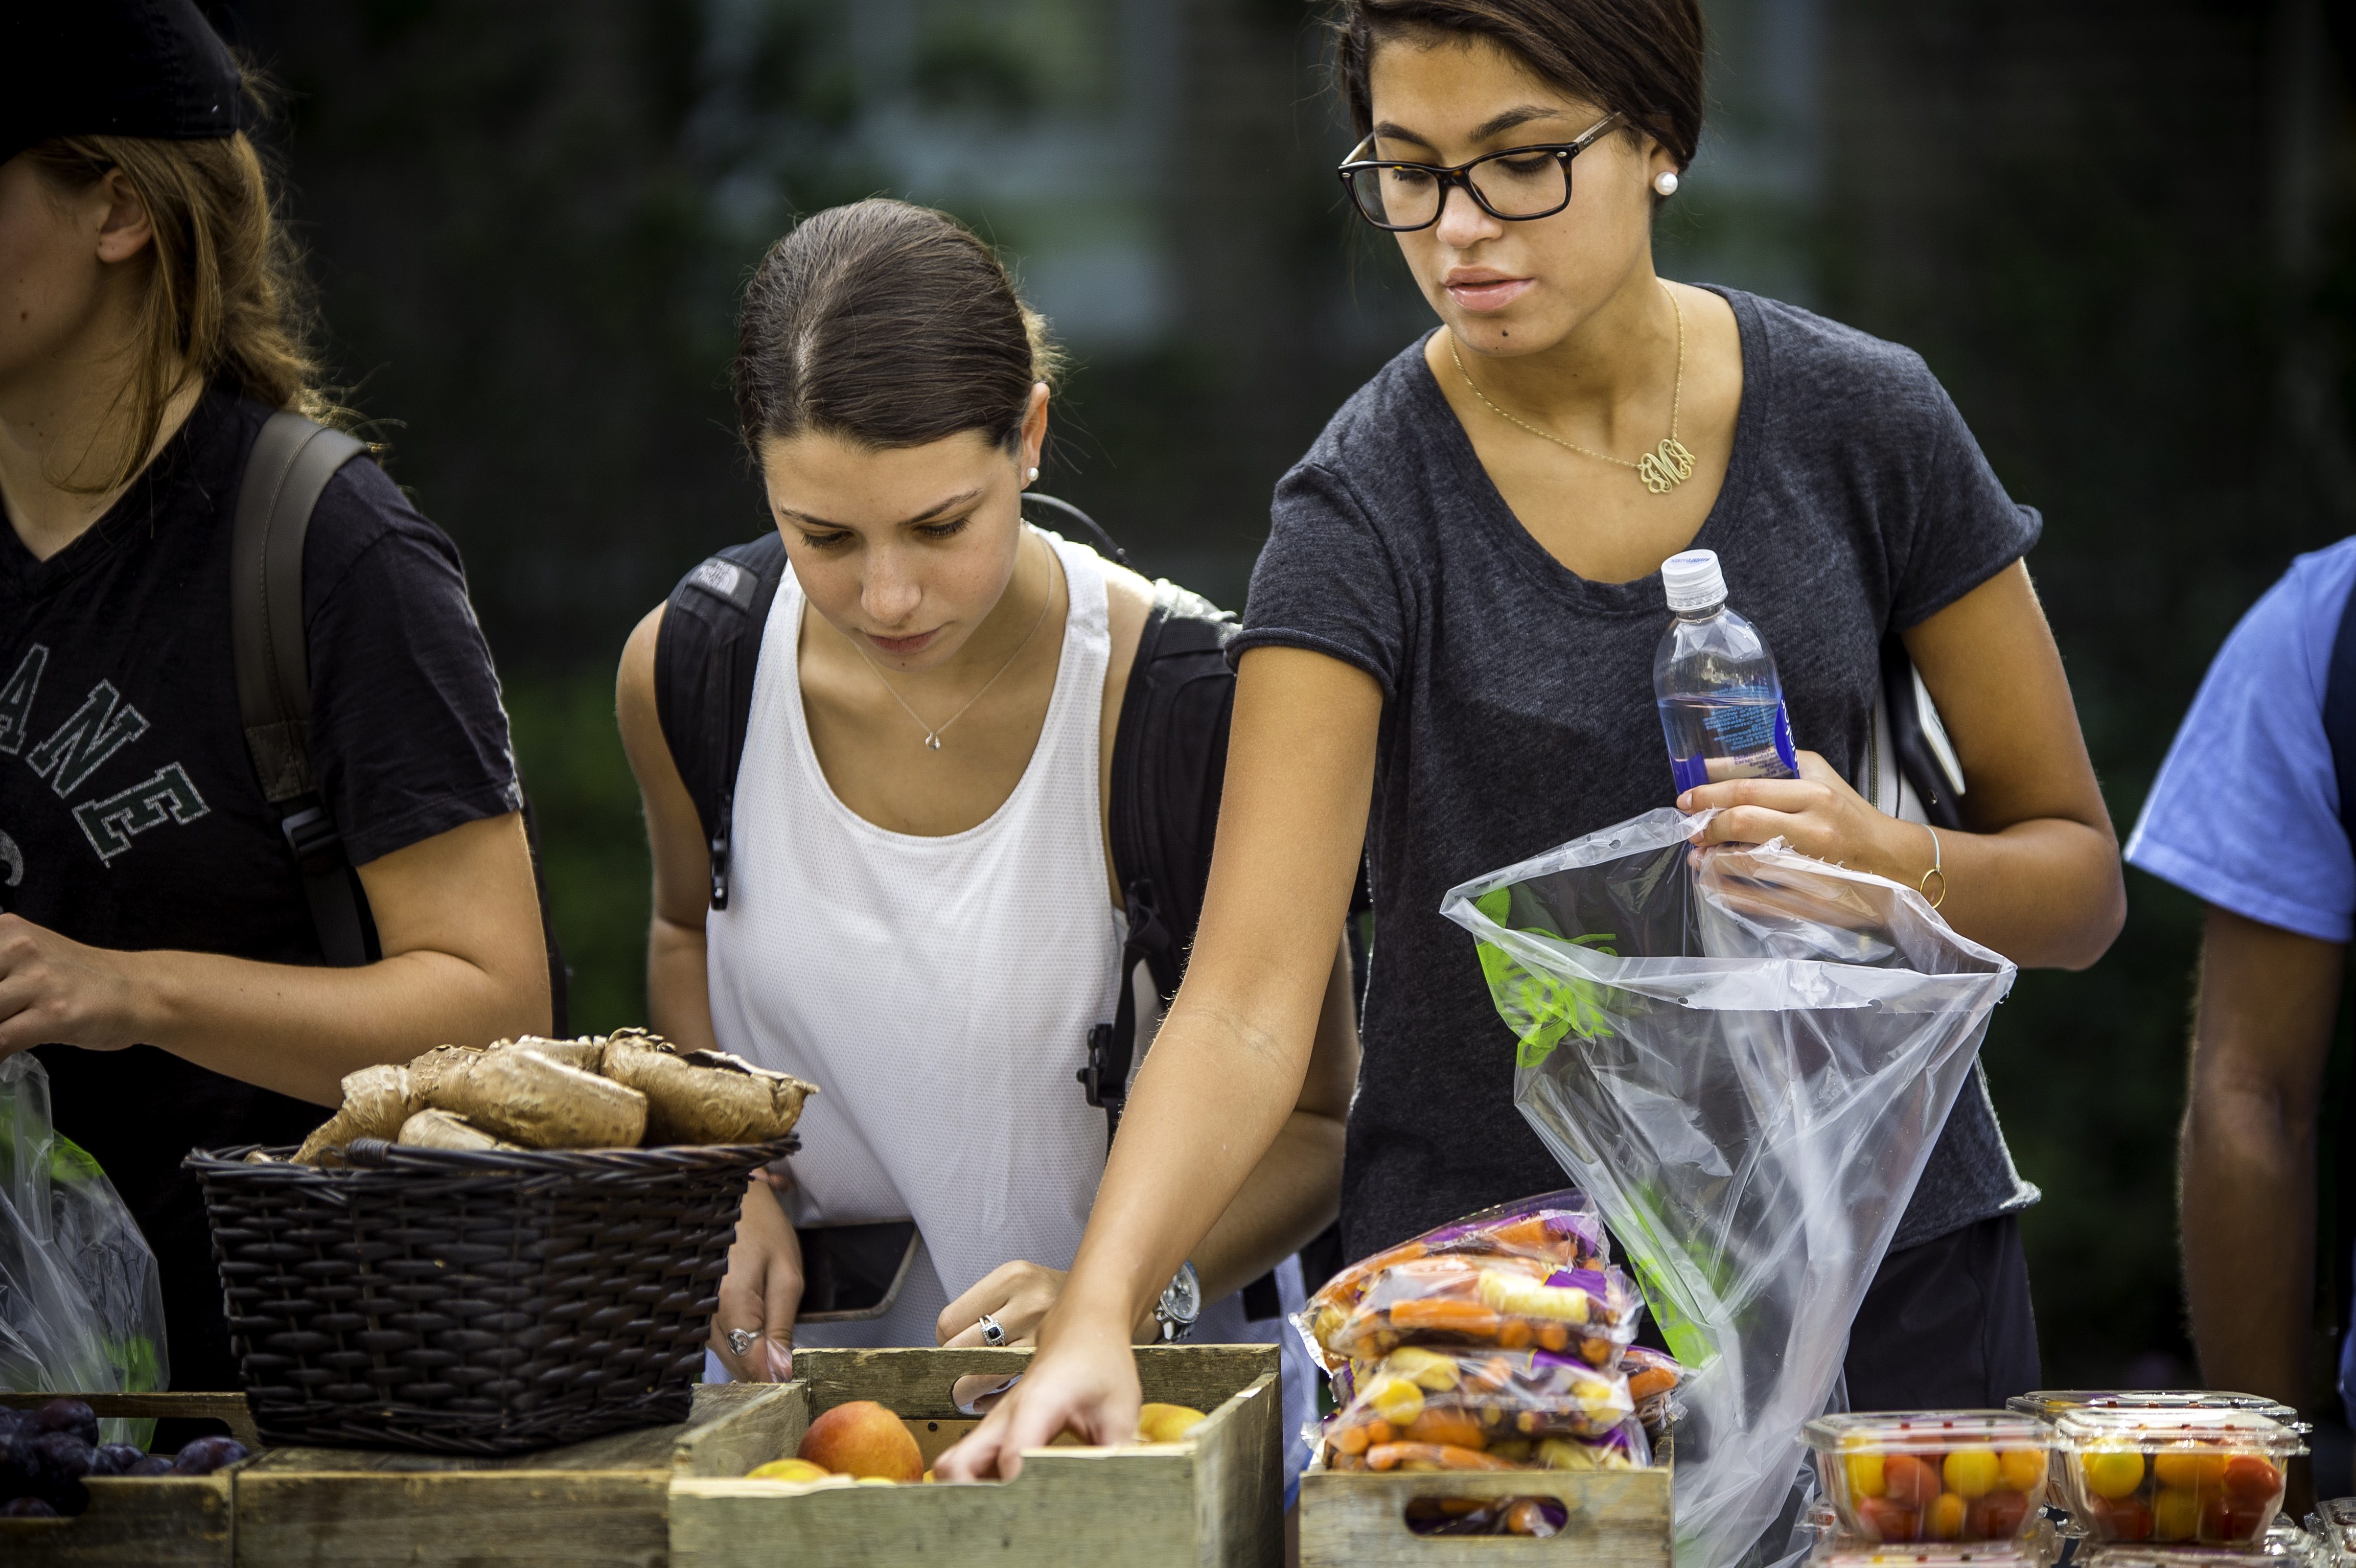 Two students shopping at the campus farmers market.